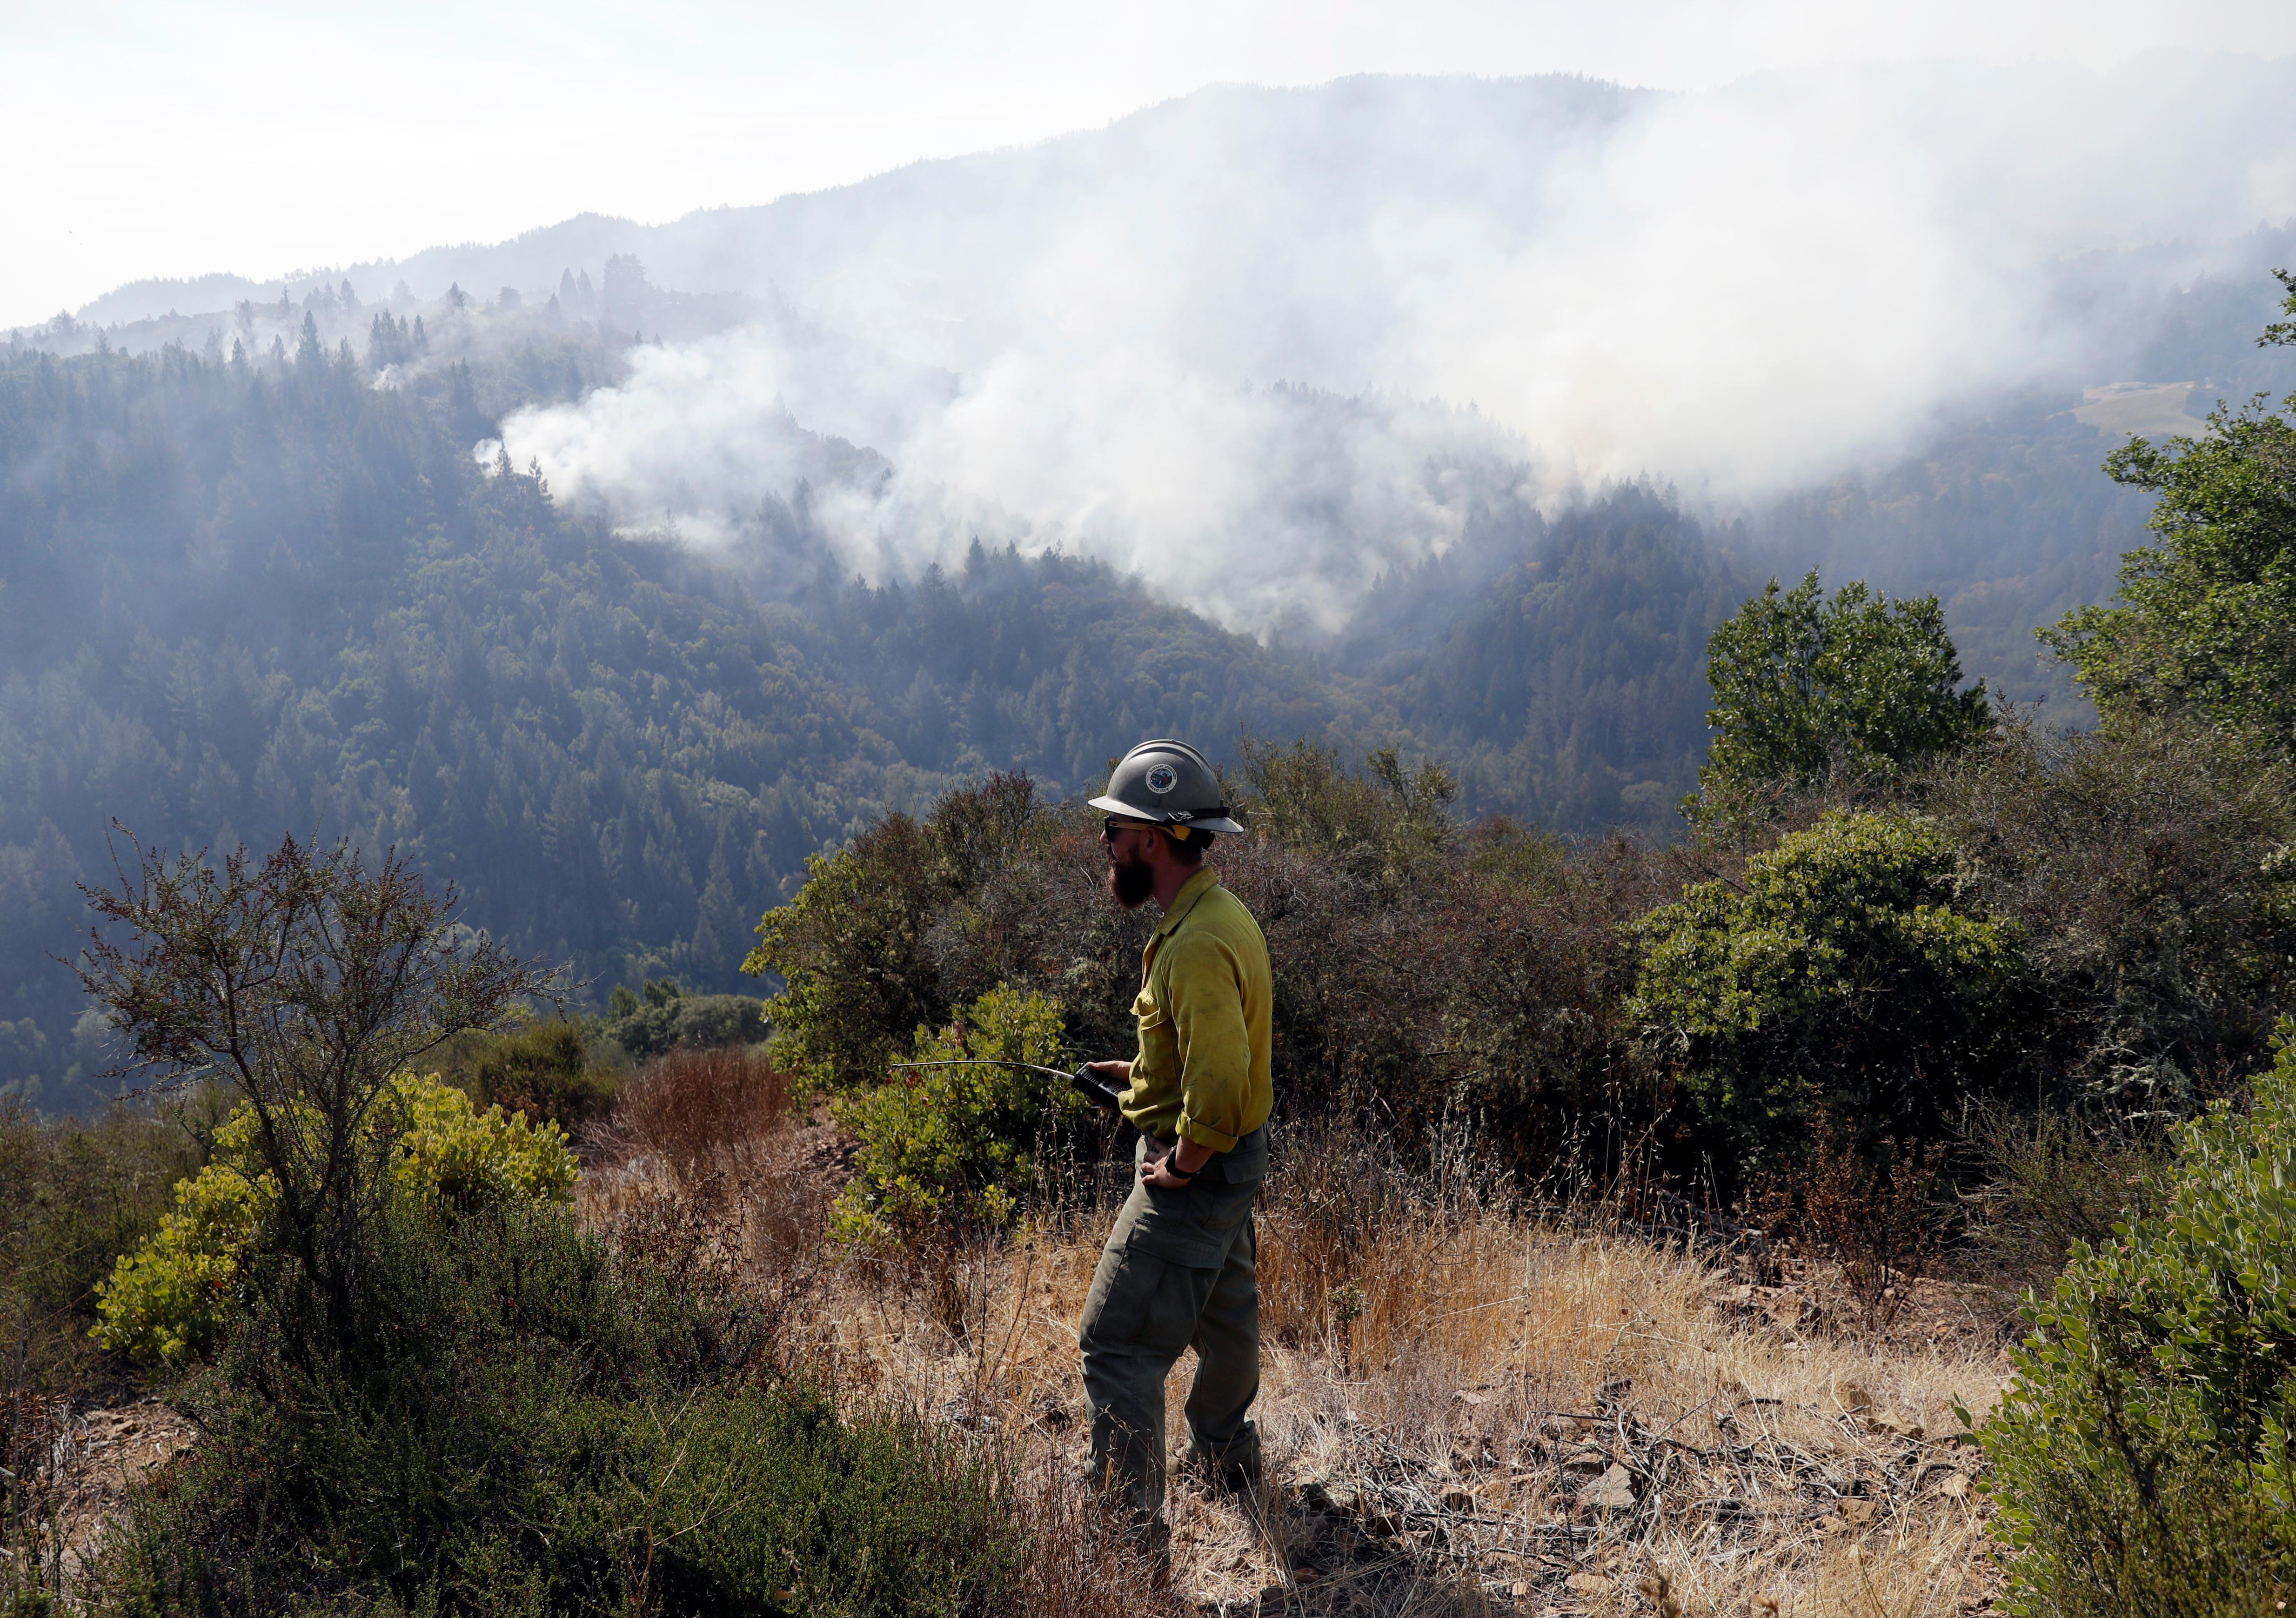 Jeff Wolf, with the El Dorado Hot Shots, out of Pollock Pines, Calif., monitors a wildfire from a mountain top, Sunday, Oct. 15, 2017, in Oakville, Calif. With the winds dying down, fire officials in California say they are finally getting the upper hand against the wildfires that have devastated wine country and other parts of the state over the past week. (AP Photo/Marcio Jose Sanchez)